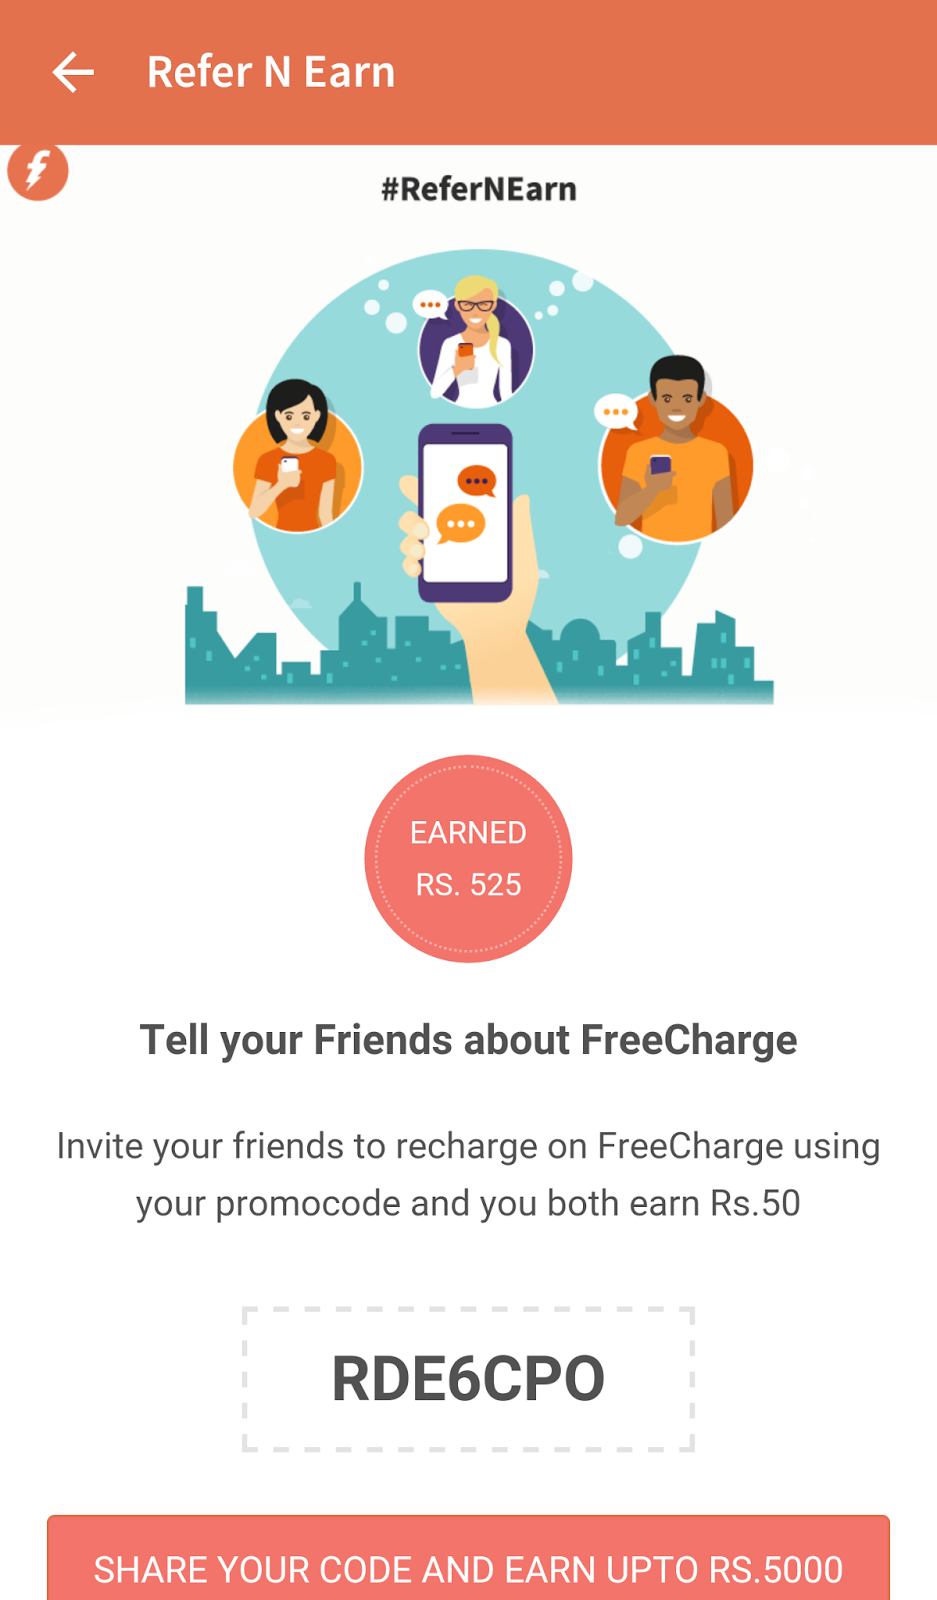 How to use freecharge coupons